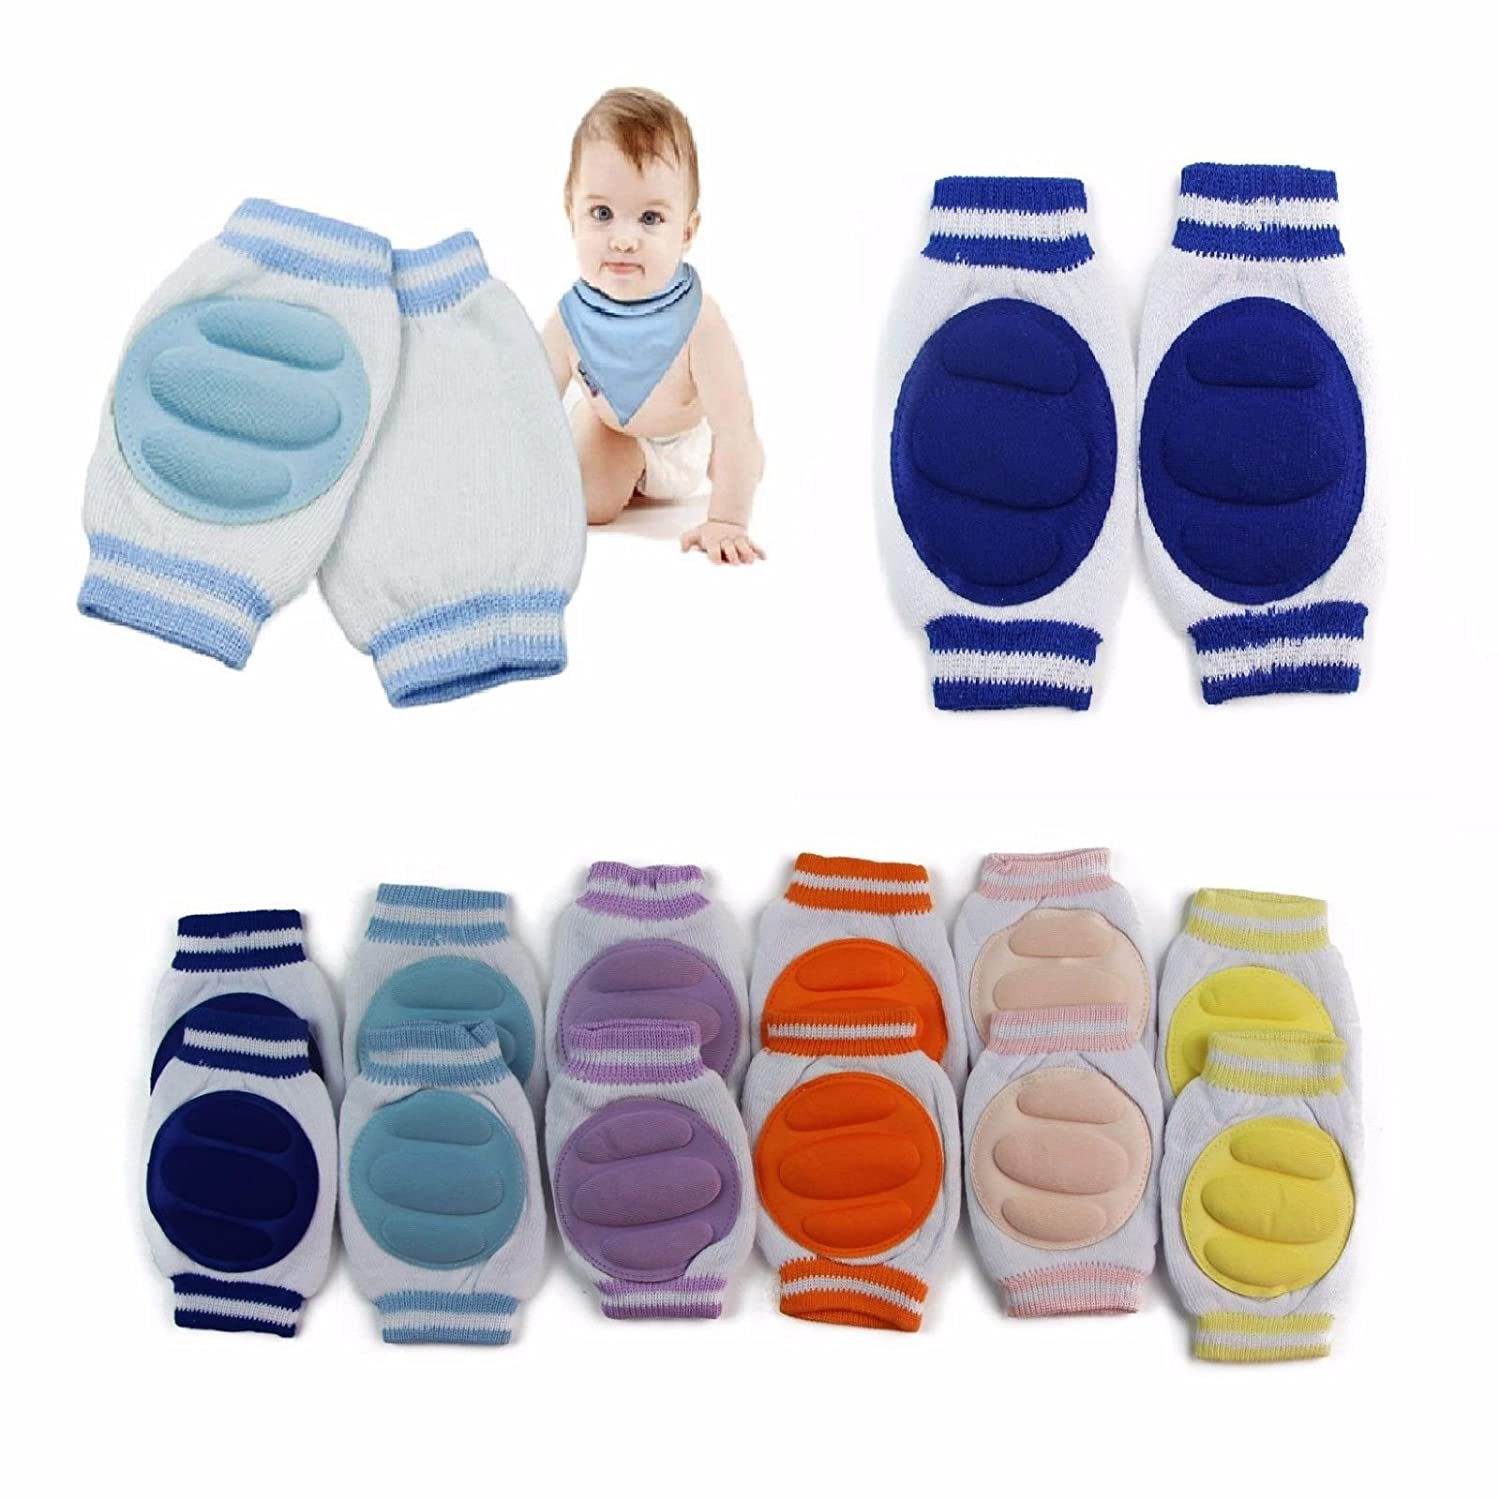 Luckystaryuan ® Big Sale!! Set of 6 Kids Cotton Crawling Leg Warmer hx89caet